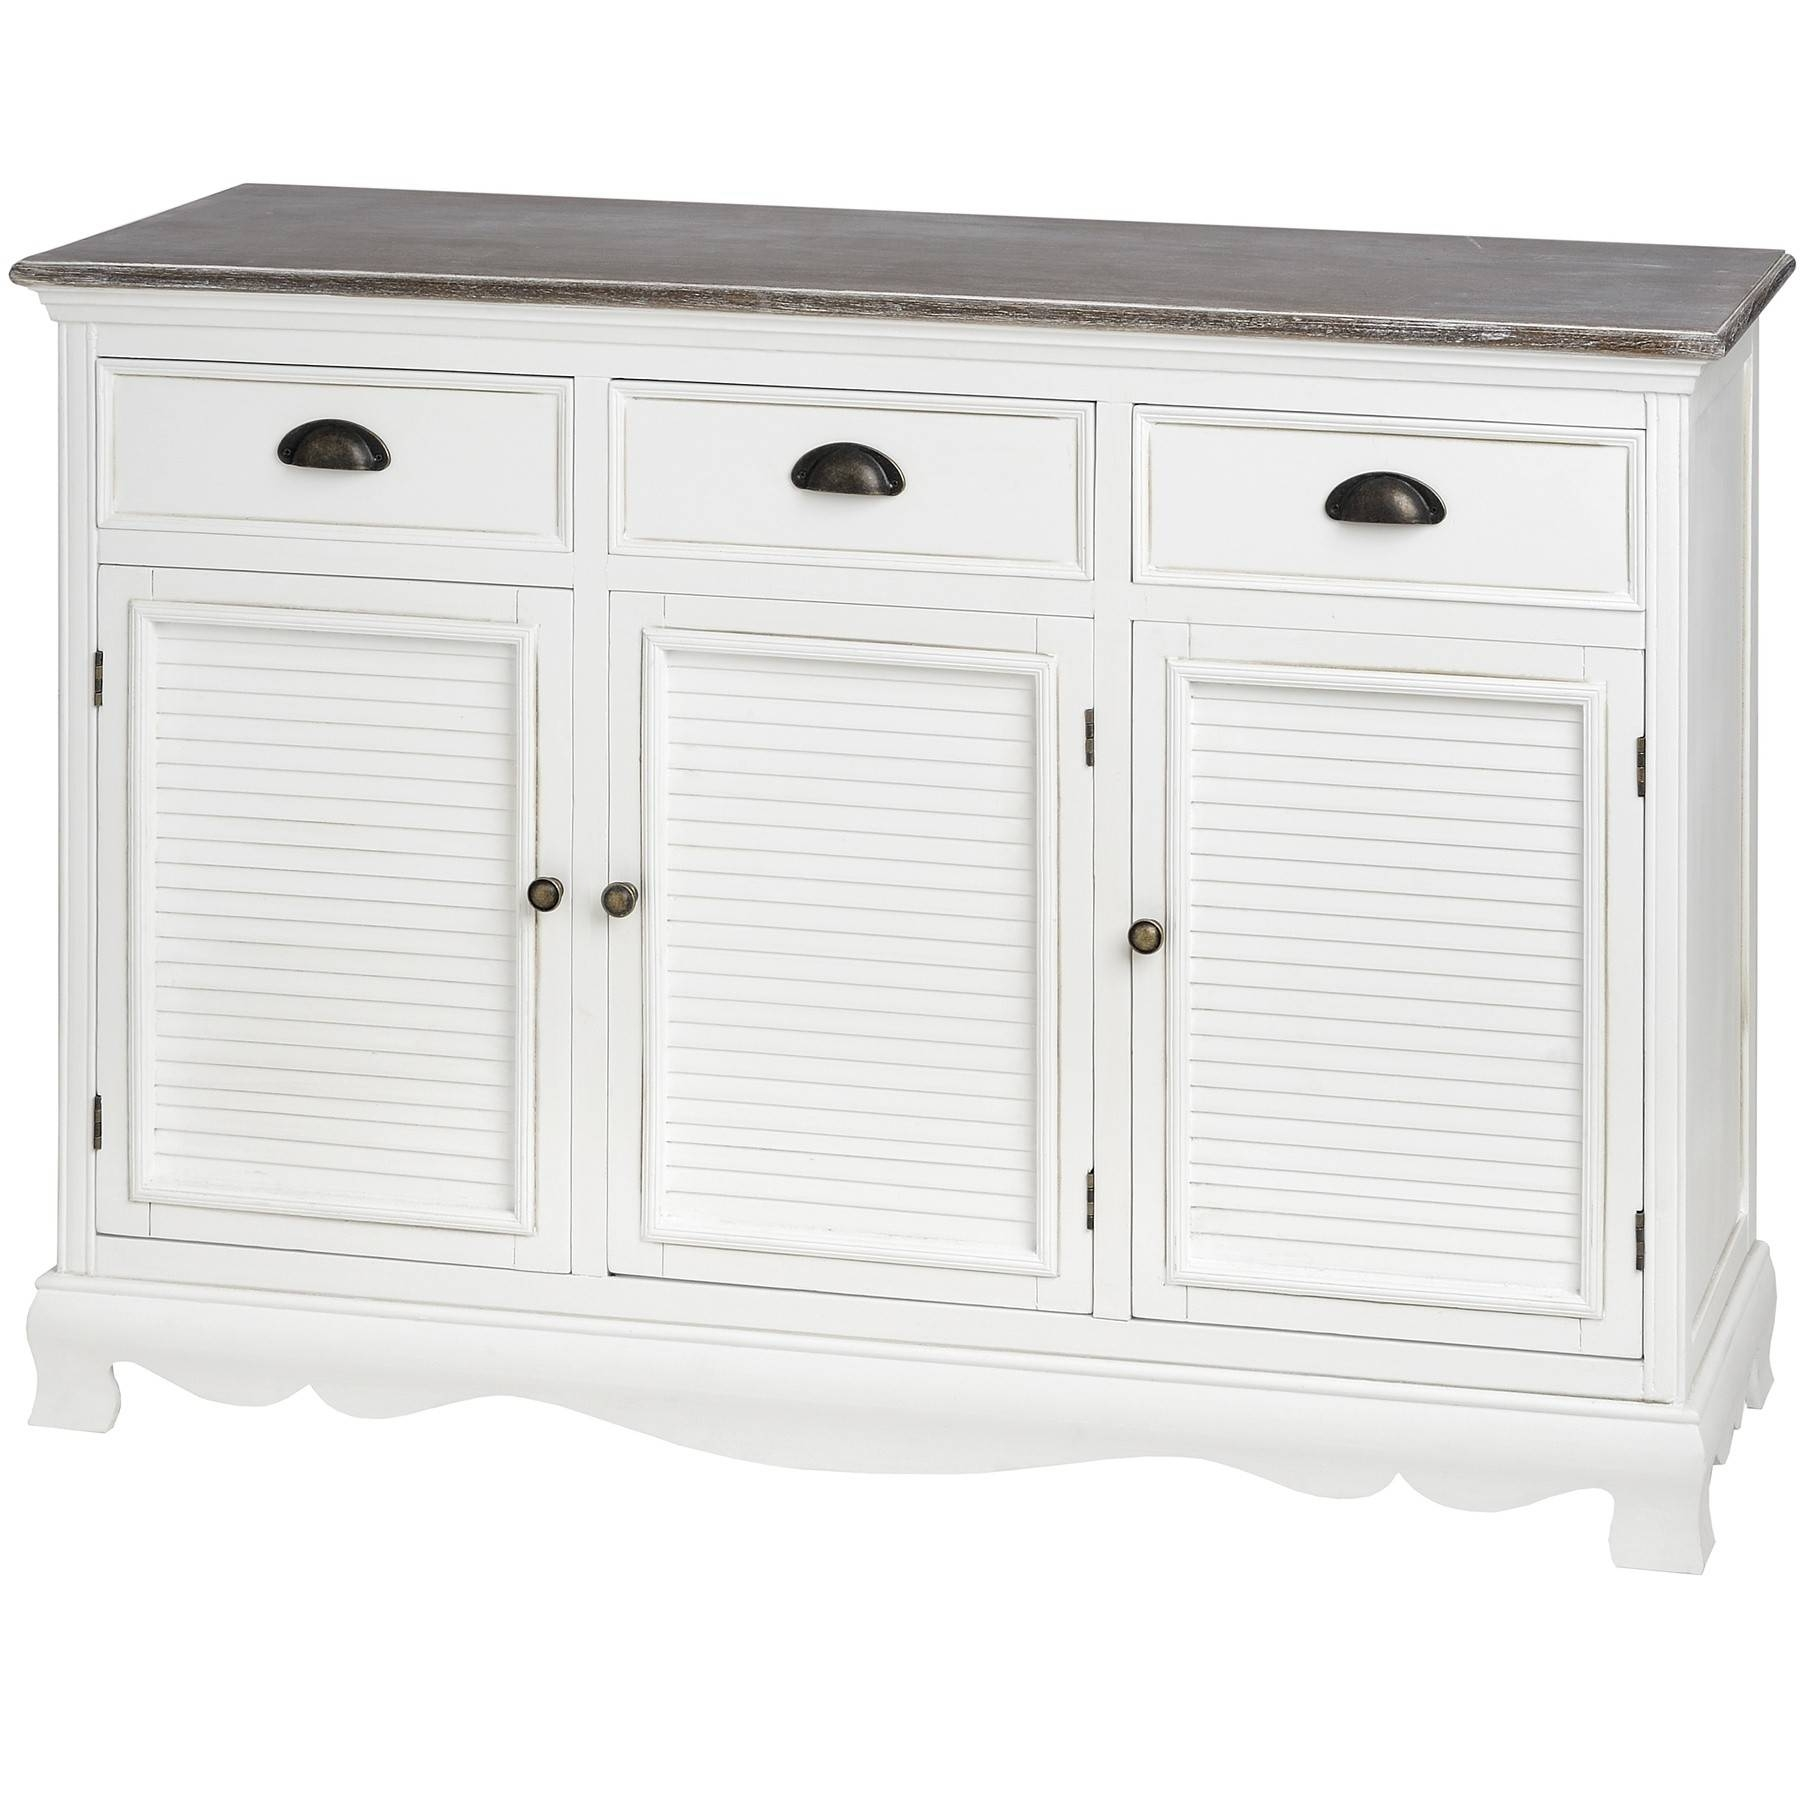 Louisiana Large White Sideboard With 3 Doors| Bedroom Furniture Direct With Regard To Fully Assembled Sideboards (#13 of 20)